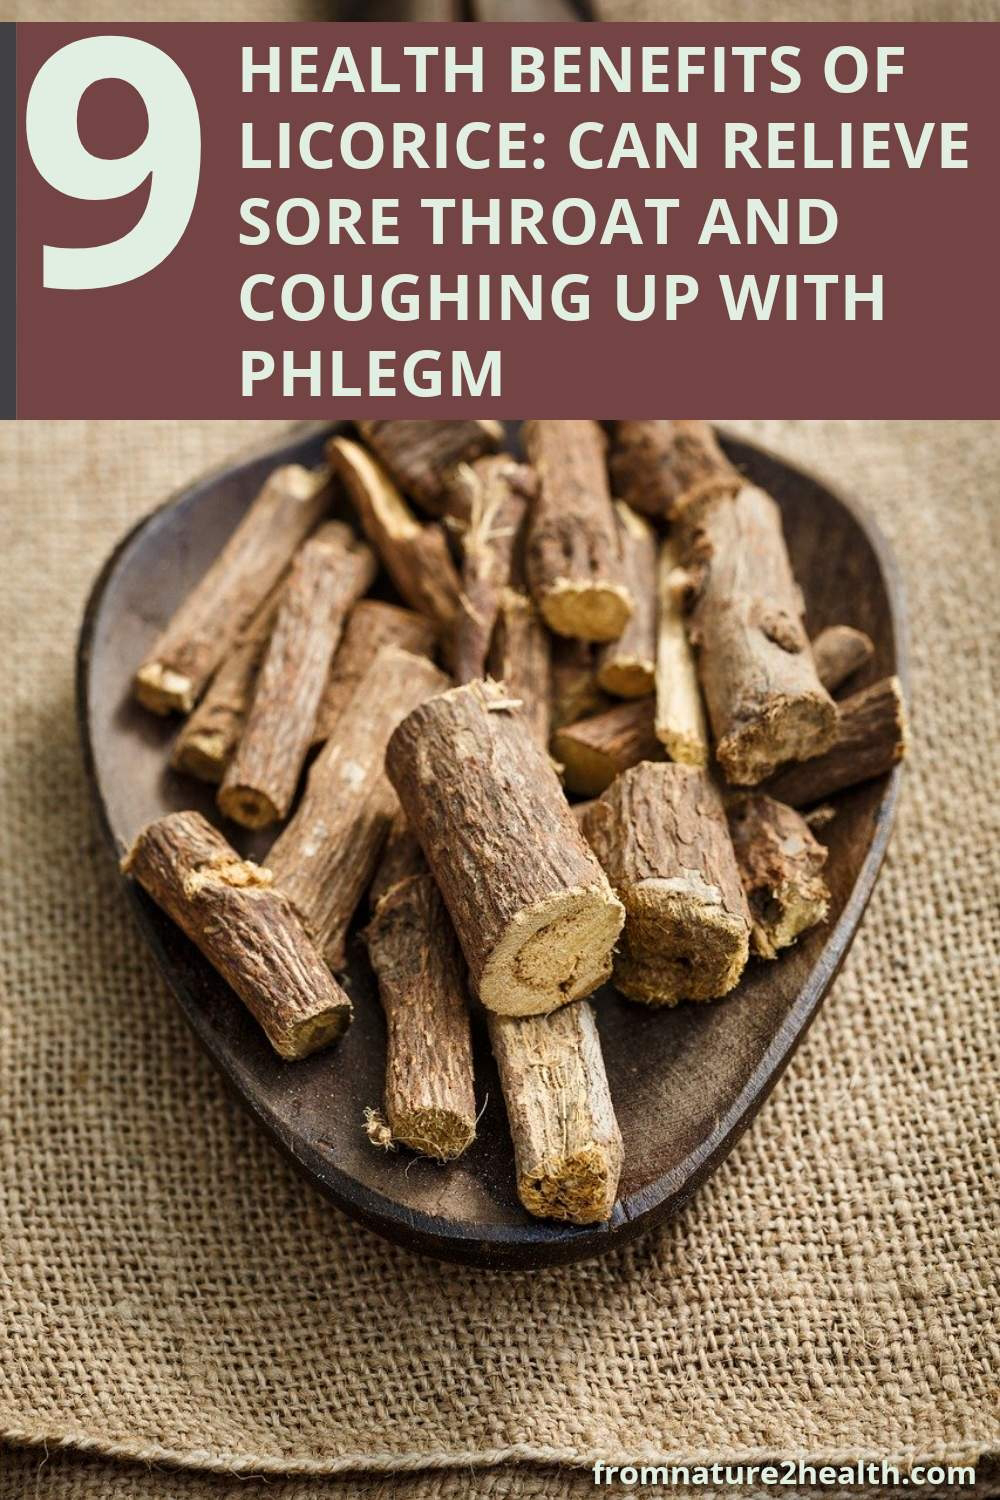 9 Health Benefits of Licorice: Can Relieve Sore Throat and Coughing Up with Phlegm